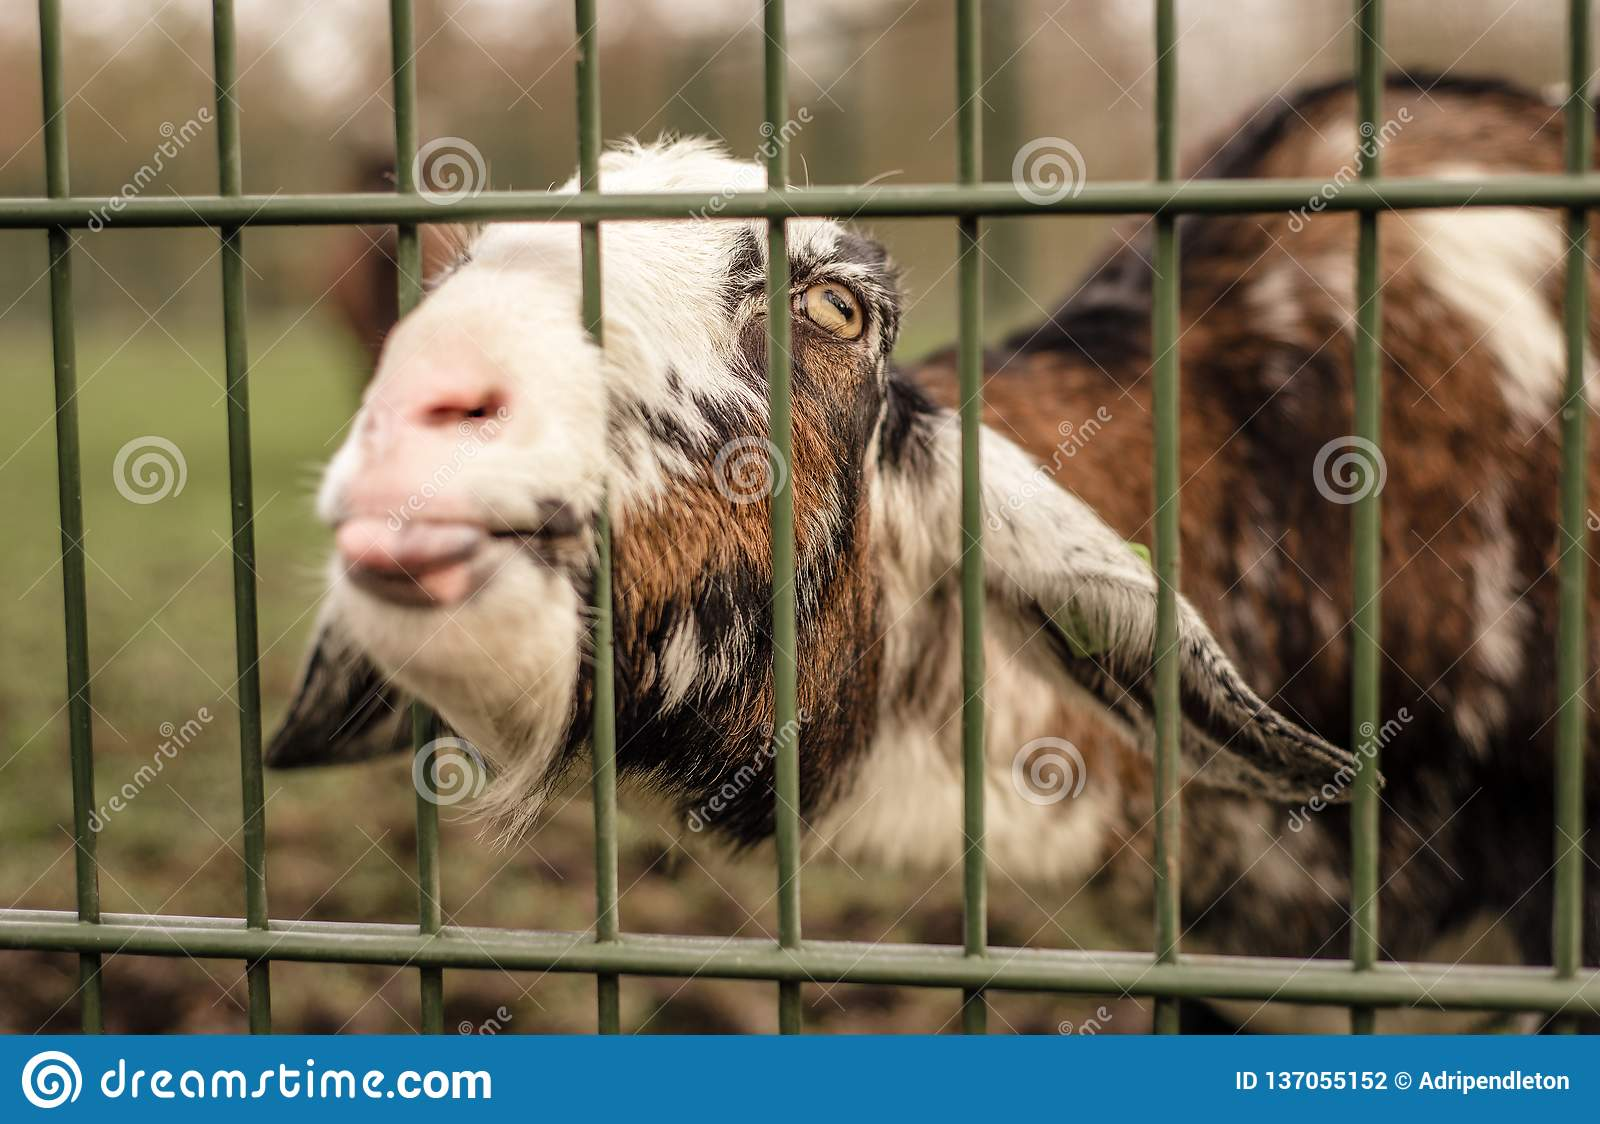 Goat Sticks Tongue Out With Head Through Fence, Begging For Food